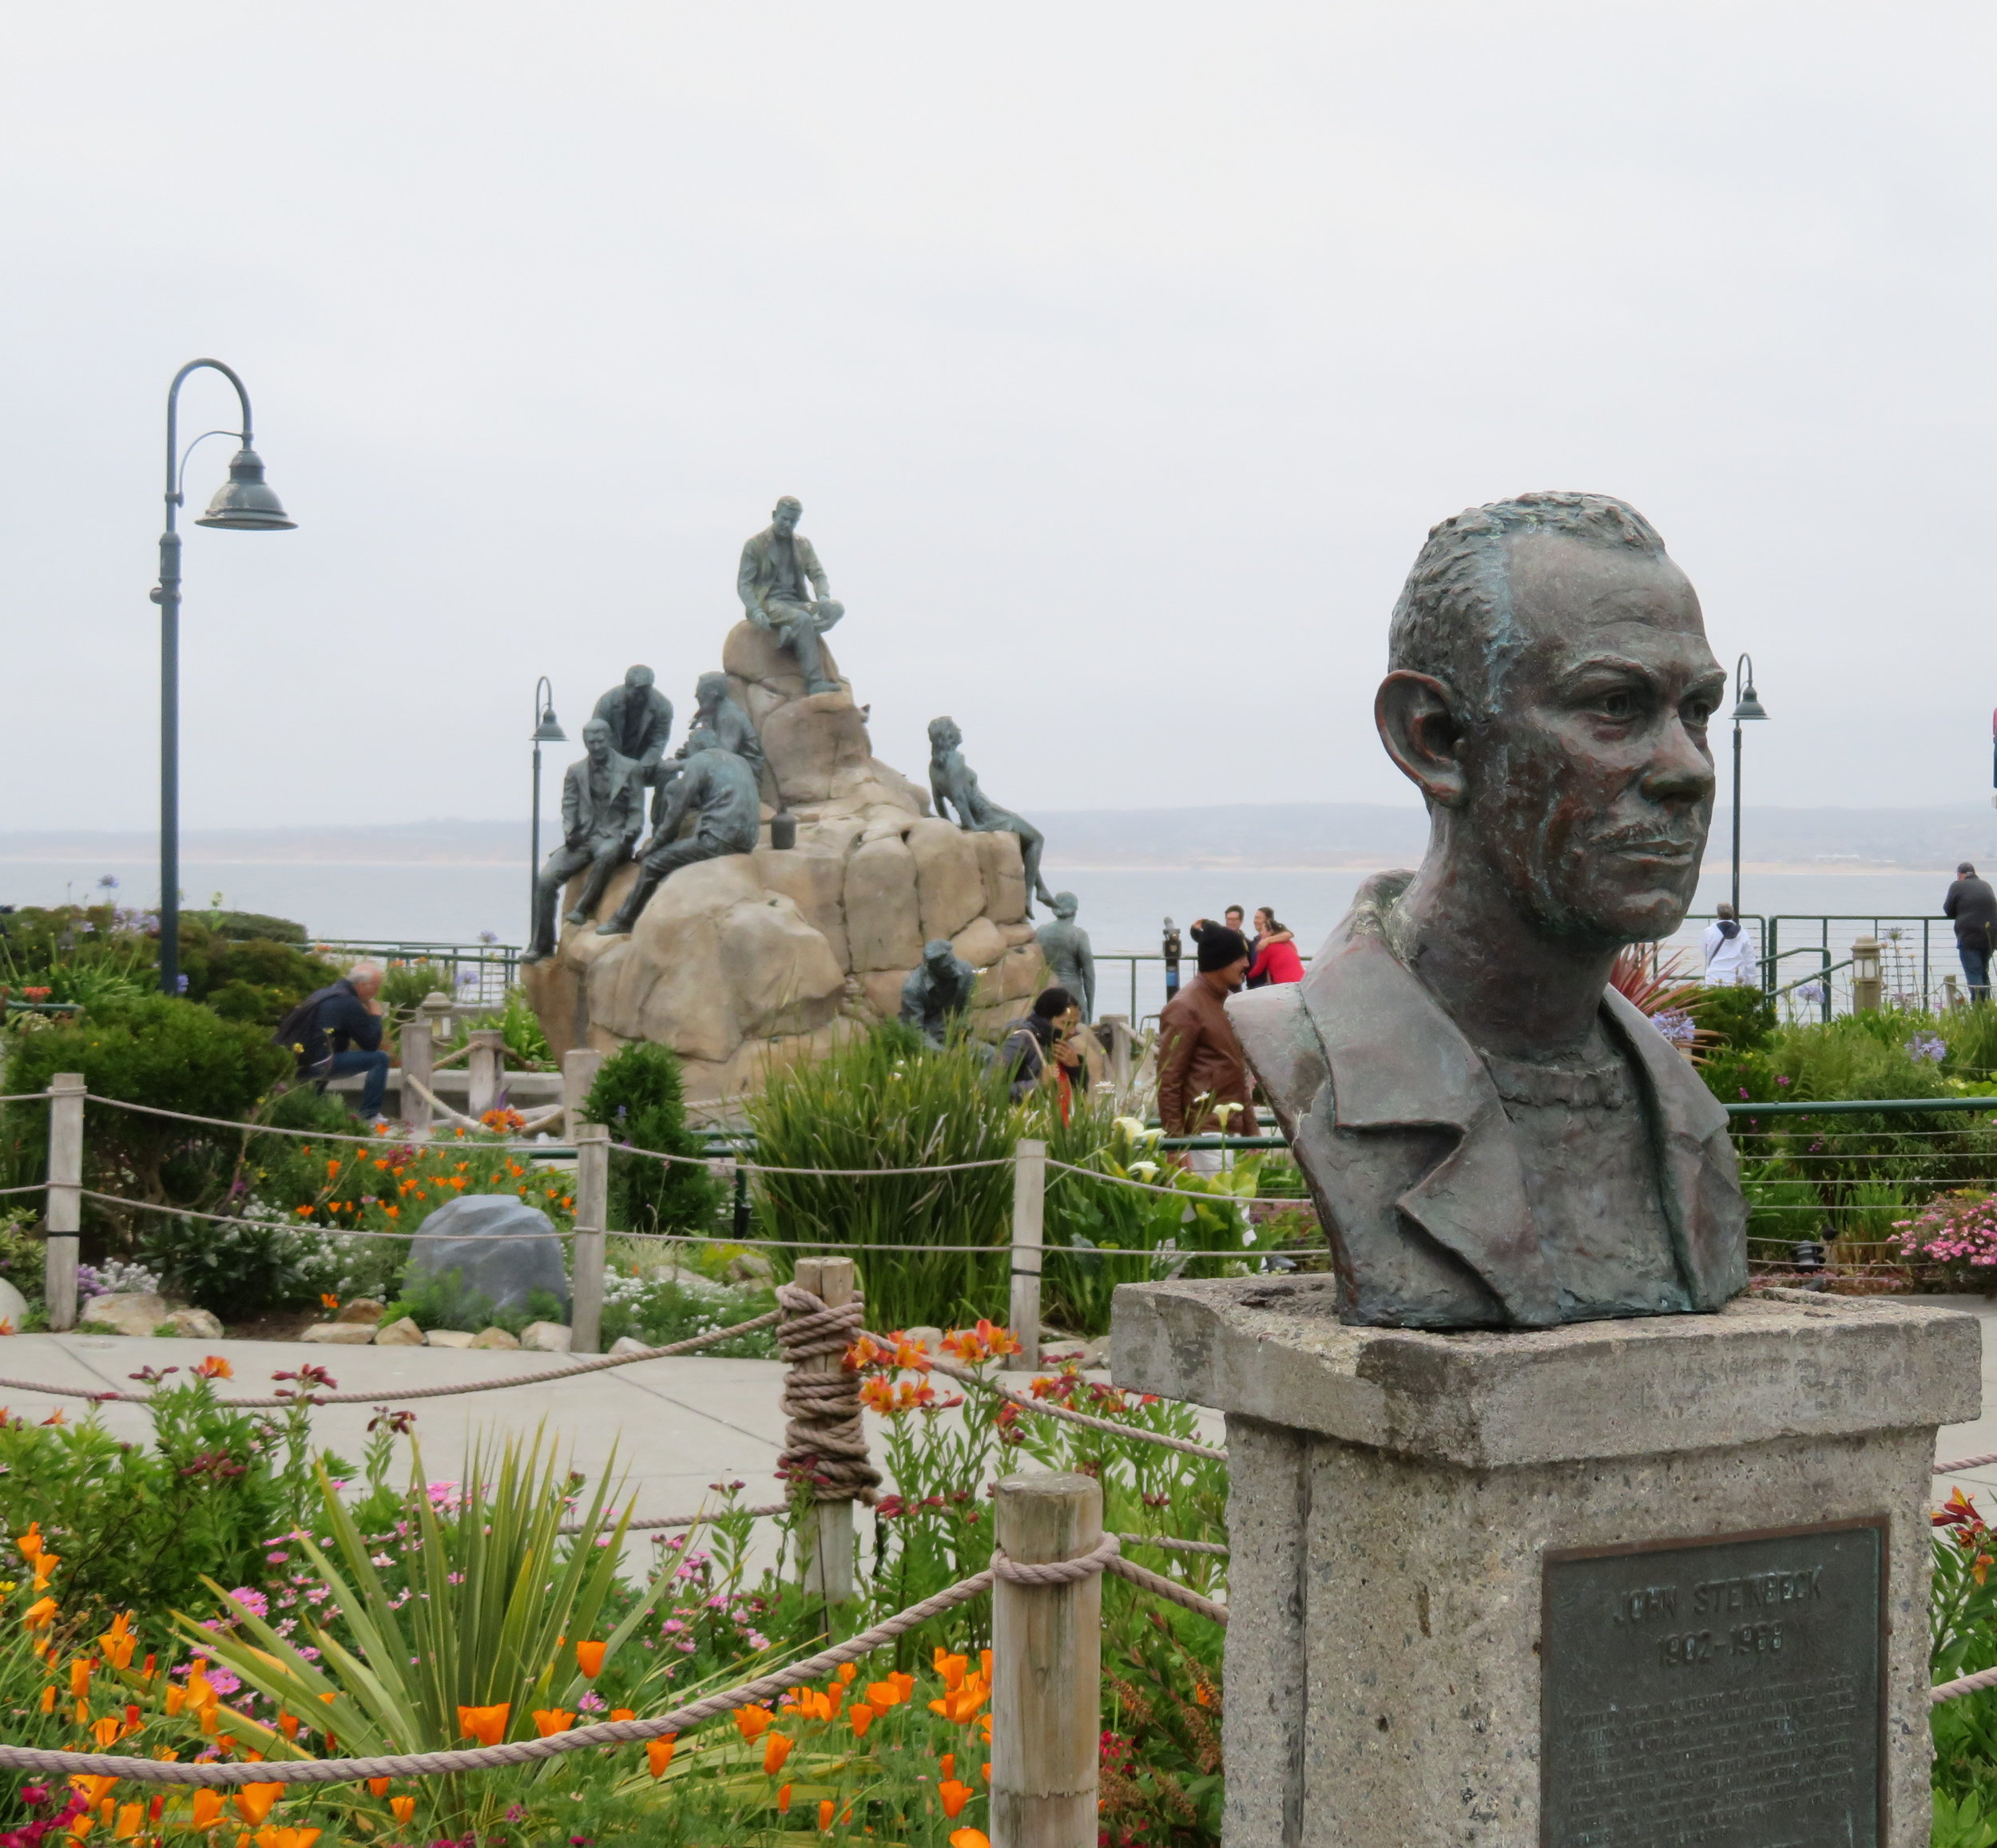 A bust of Steinbeck and the Cannery Row Monument